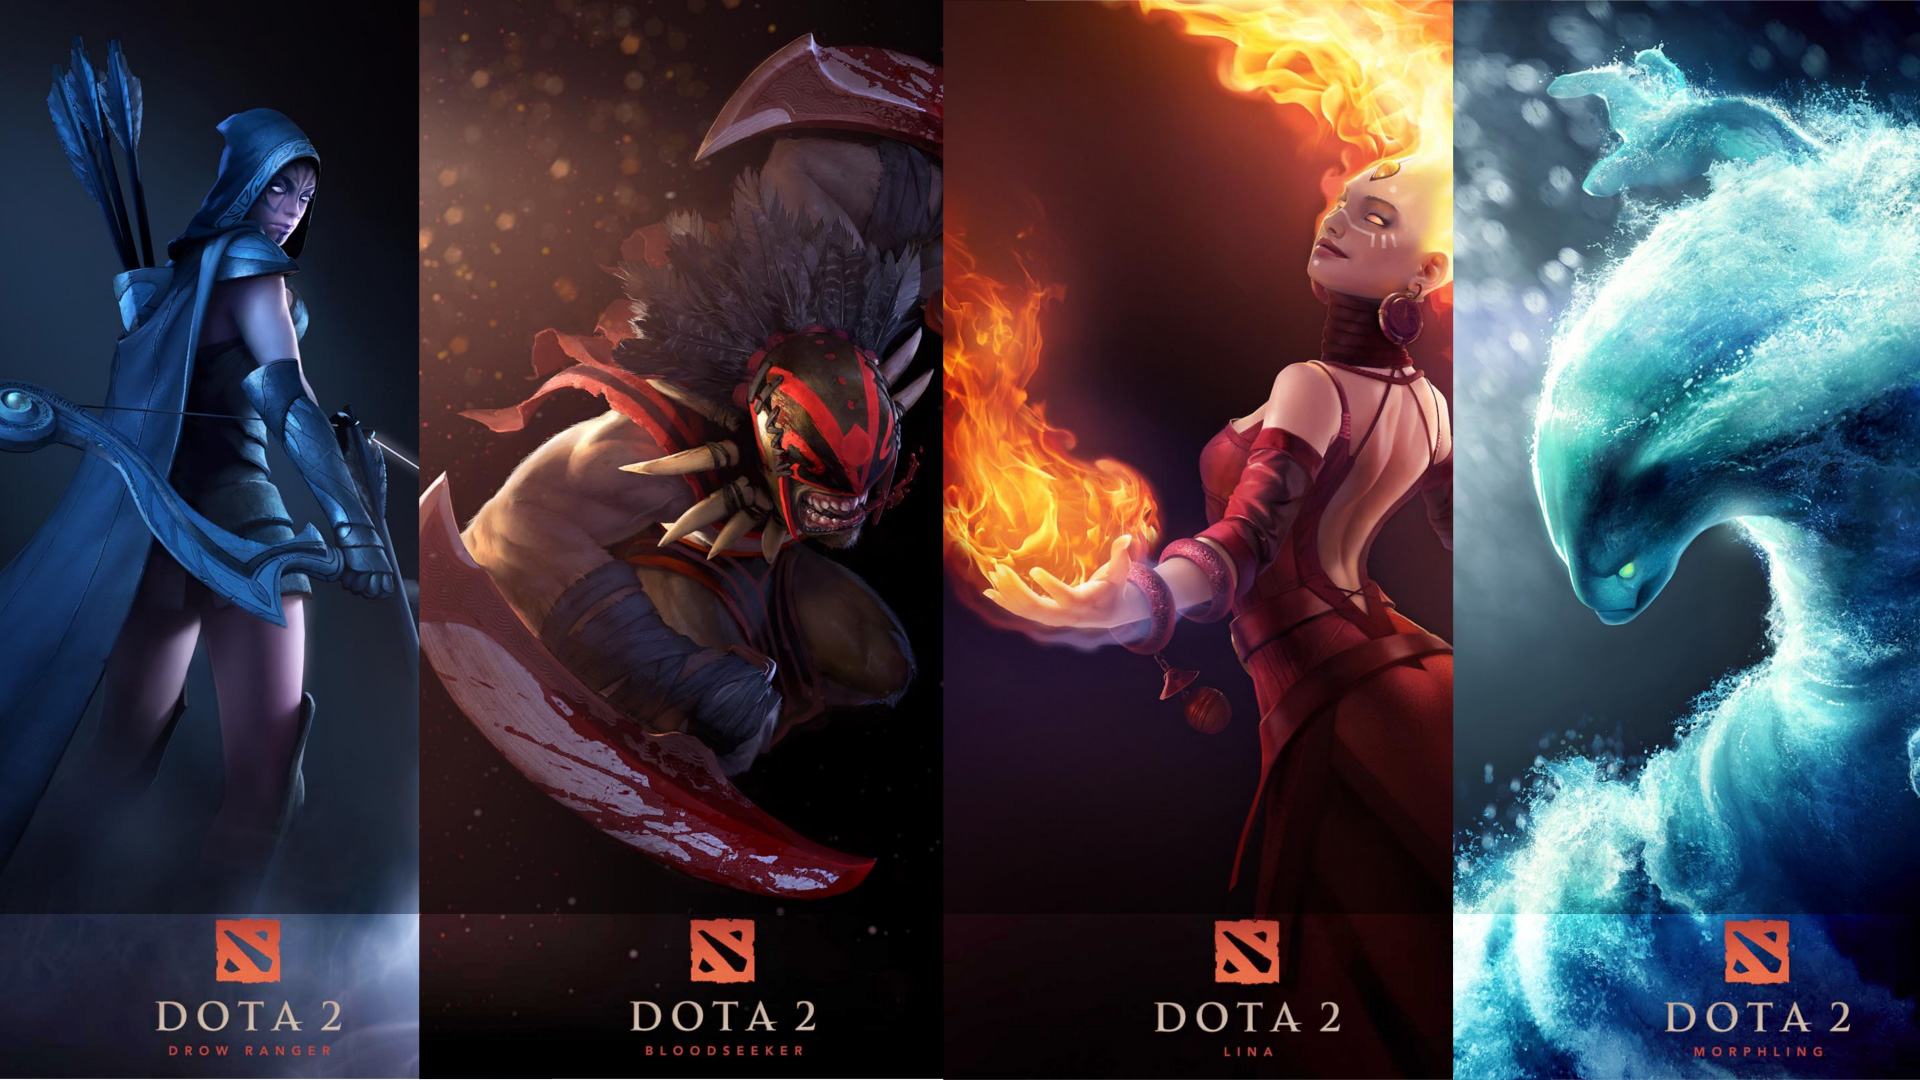 Dota 2 Fantasy 2011 Video Game Wallpapers HD Wallpapers 1920x1080